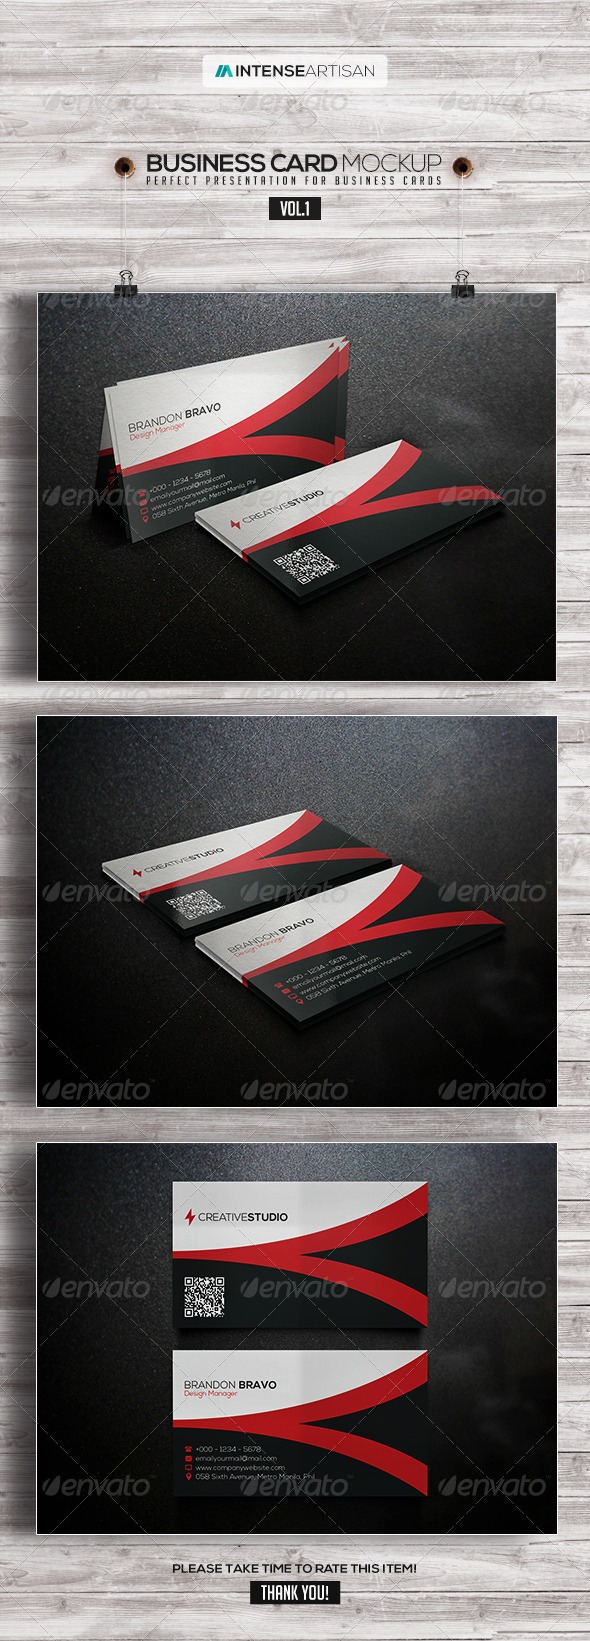 Business Card Mockup V.1 - Product Mock-Ups Graphics